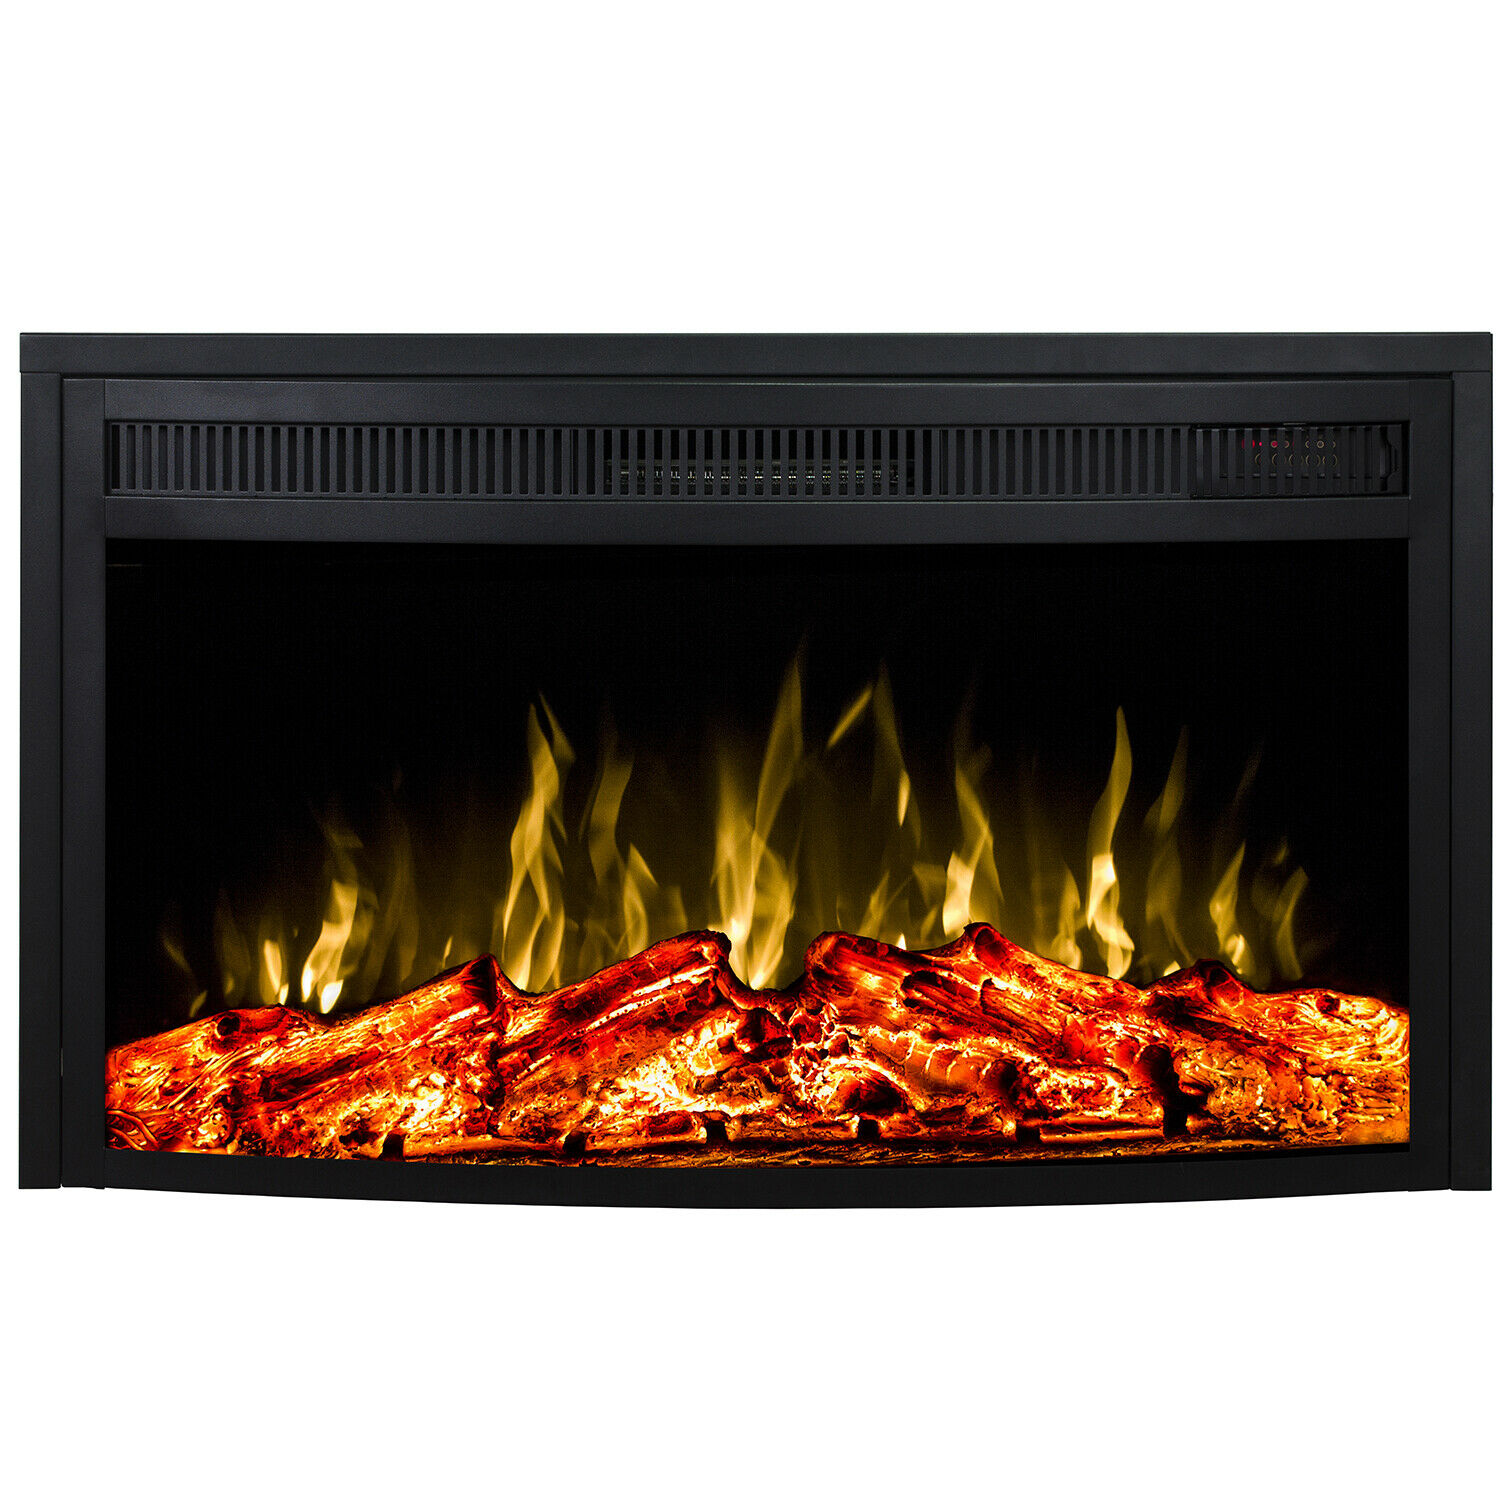 """Regal Flame 33"""" Curved Ventless Heater Electric Fireplace In"""